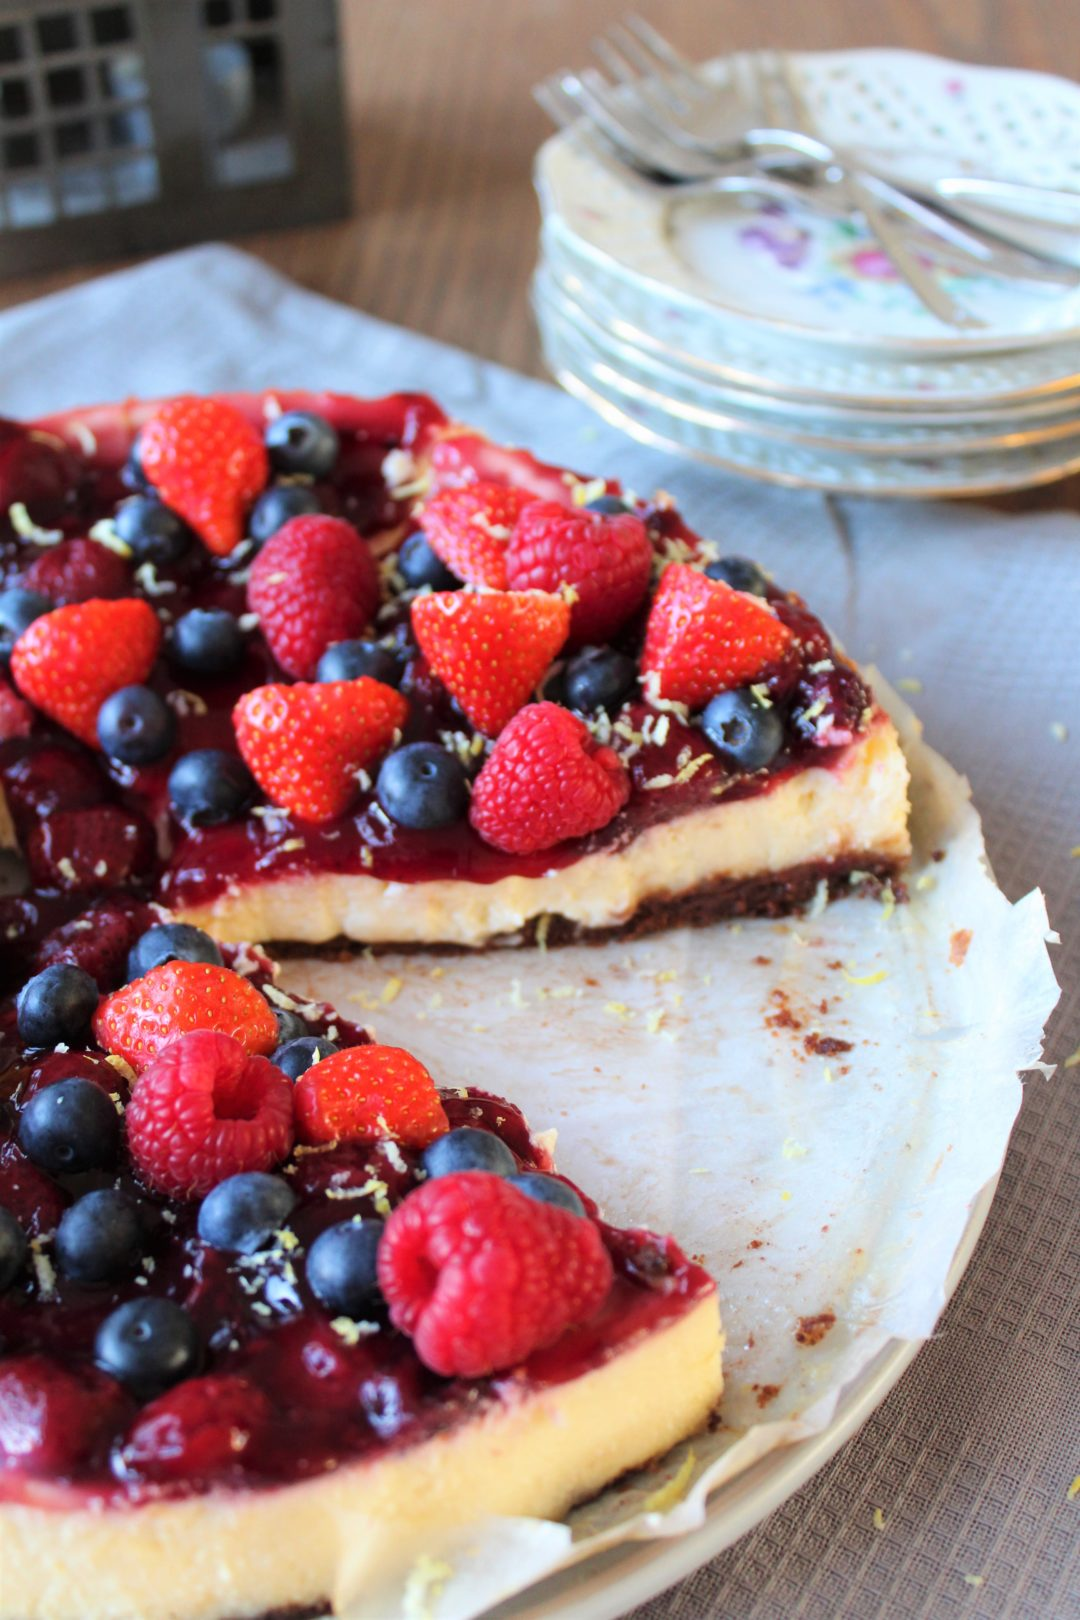 Chocolate Chip Cookie Cheesecake met Rood Fruit